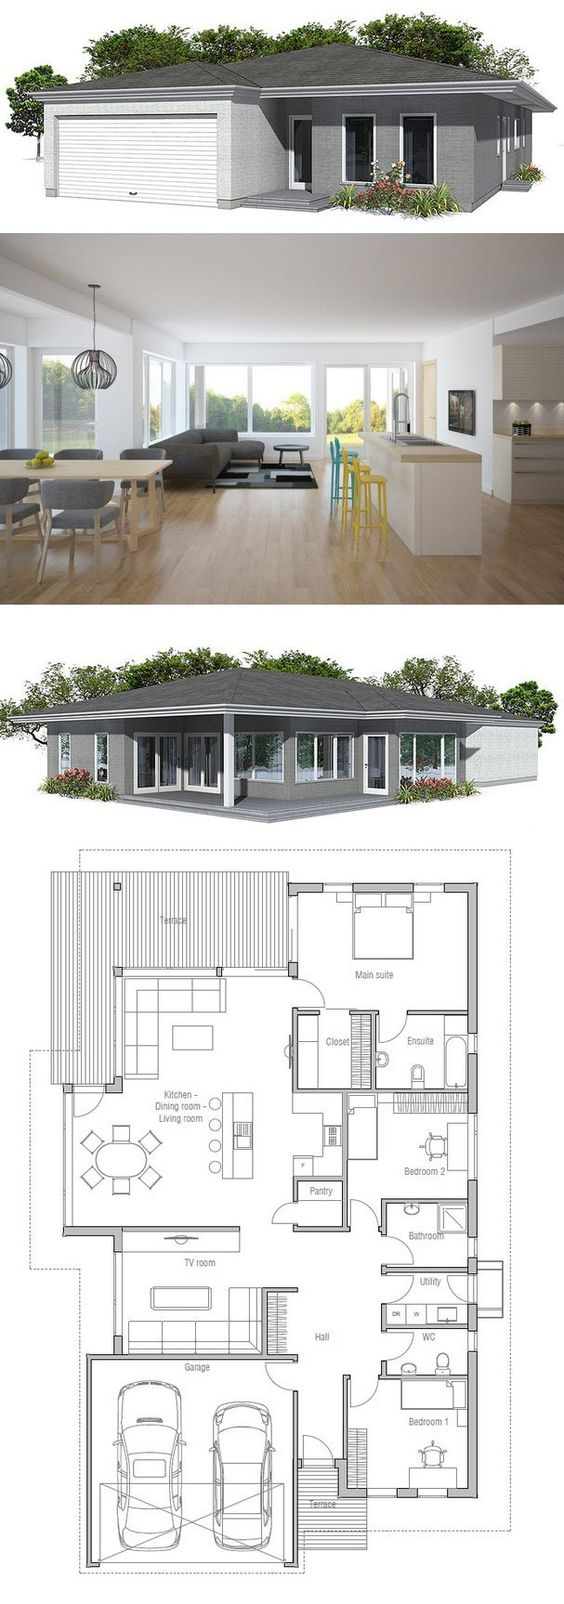 Modern House Plan with covered terrace. Garage for two cars, united dining & living area, three bedrooms.